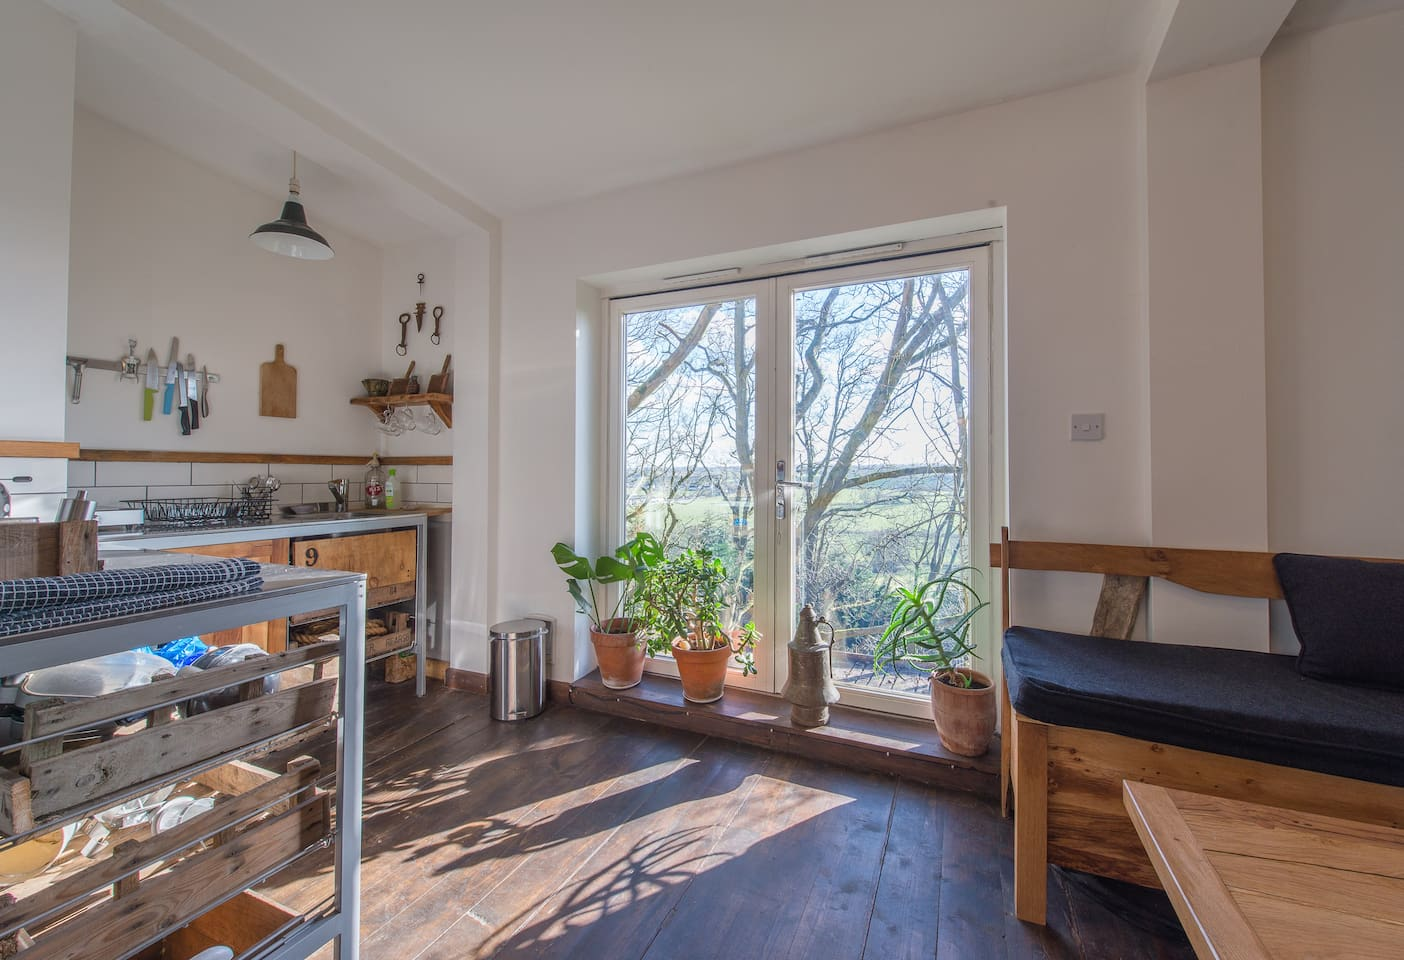 Kitchen set in the treetops and private balcony with magnificent views